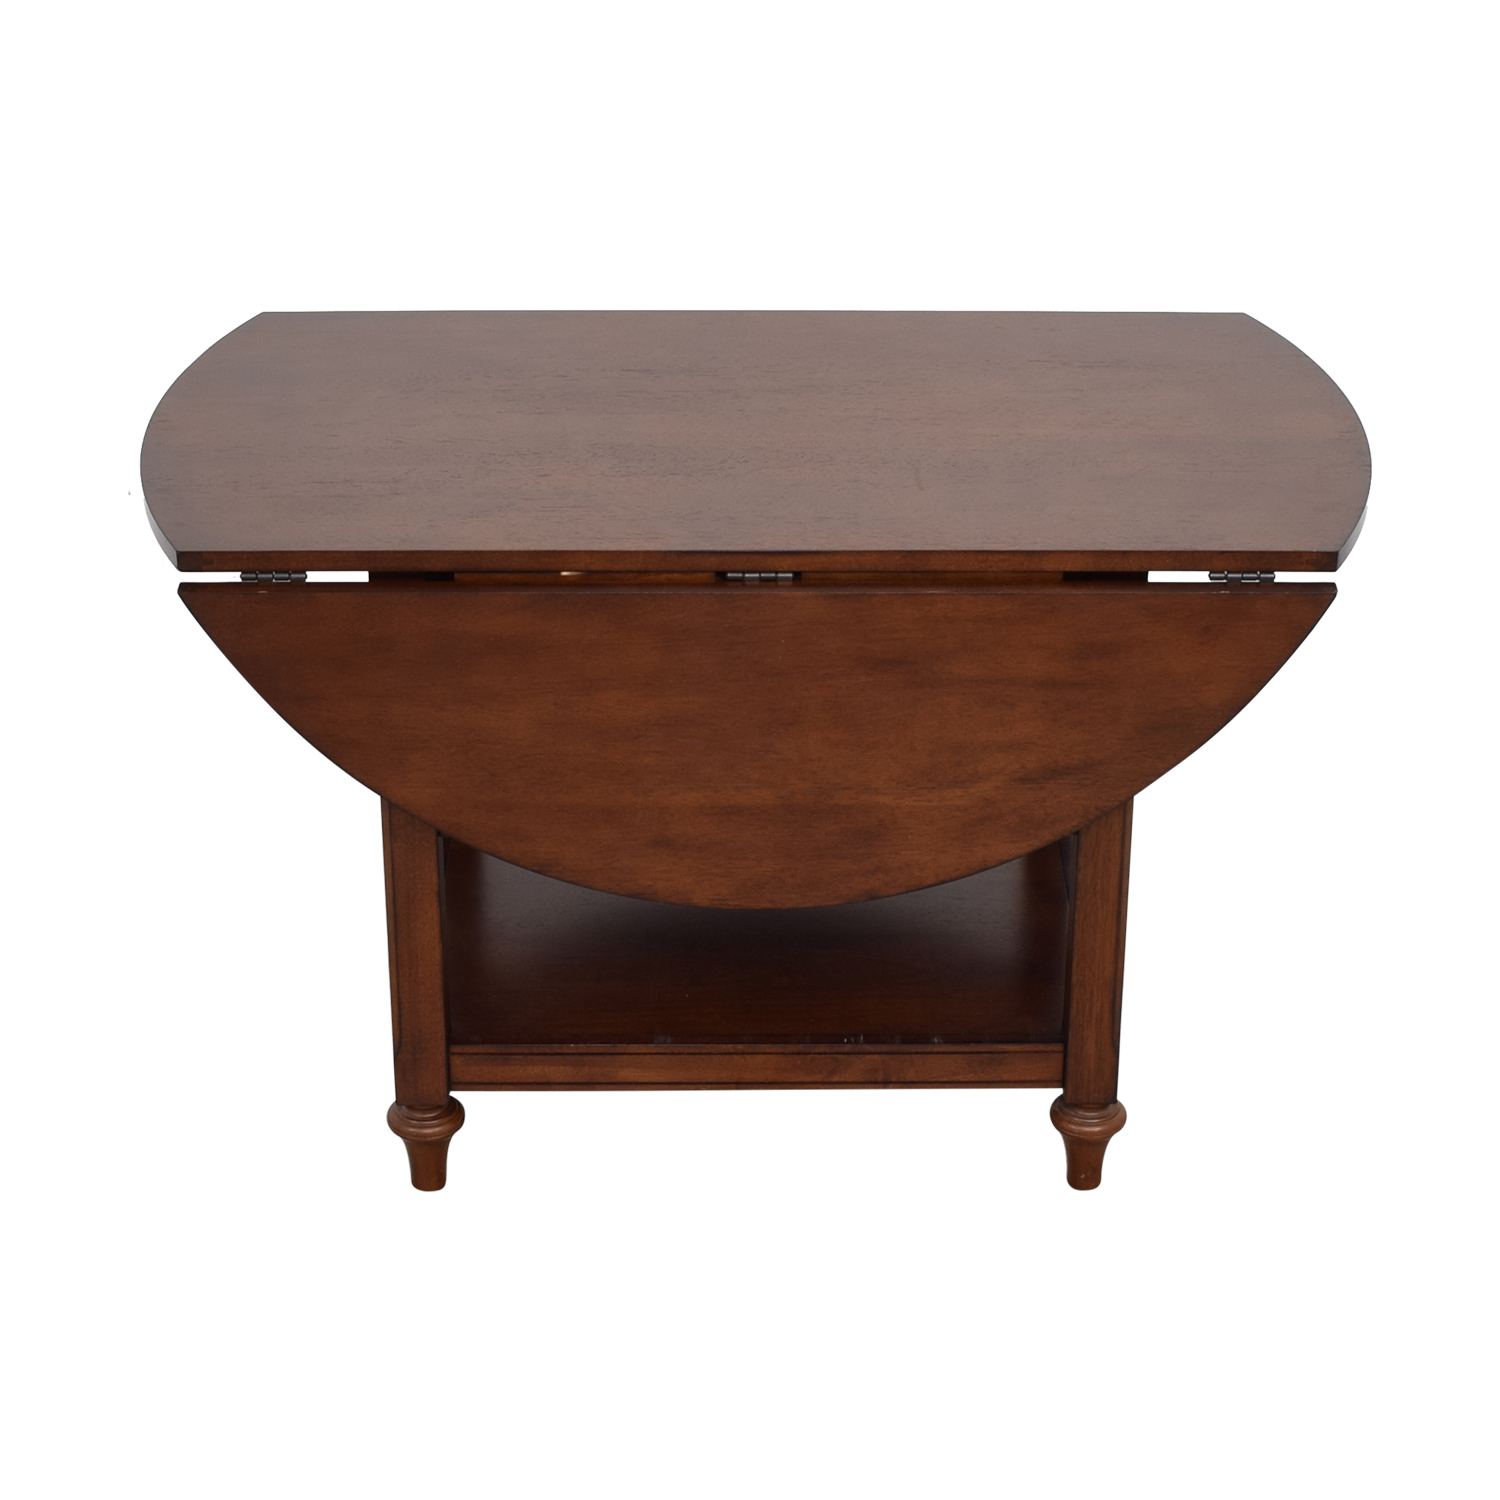 55% OFF - Pottery Barn Pottery Barn Shayne Drop Leaf Kitchen Table / Tables